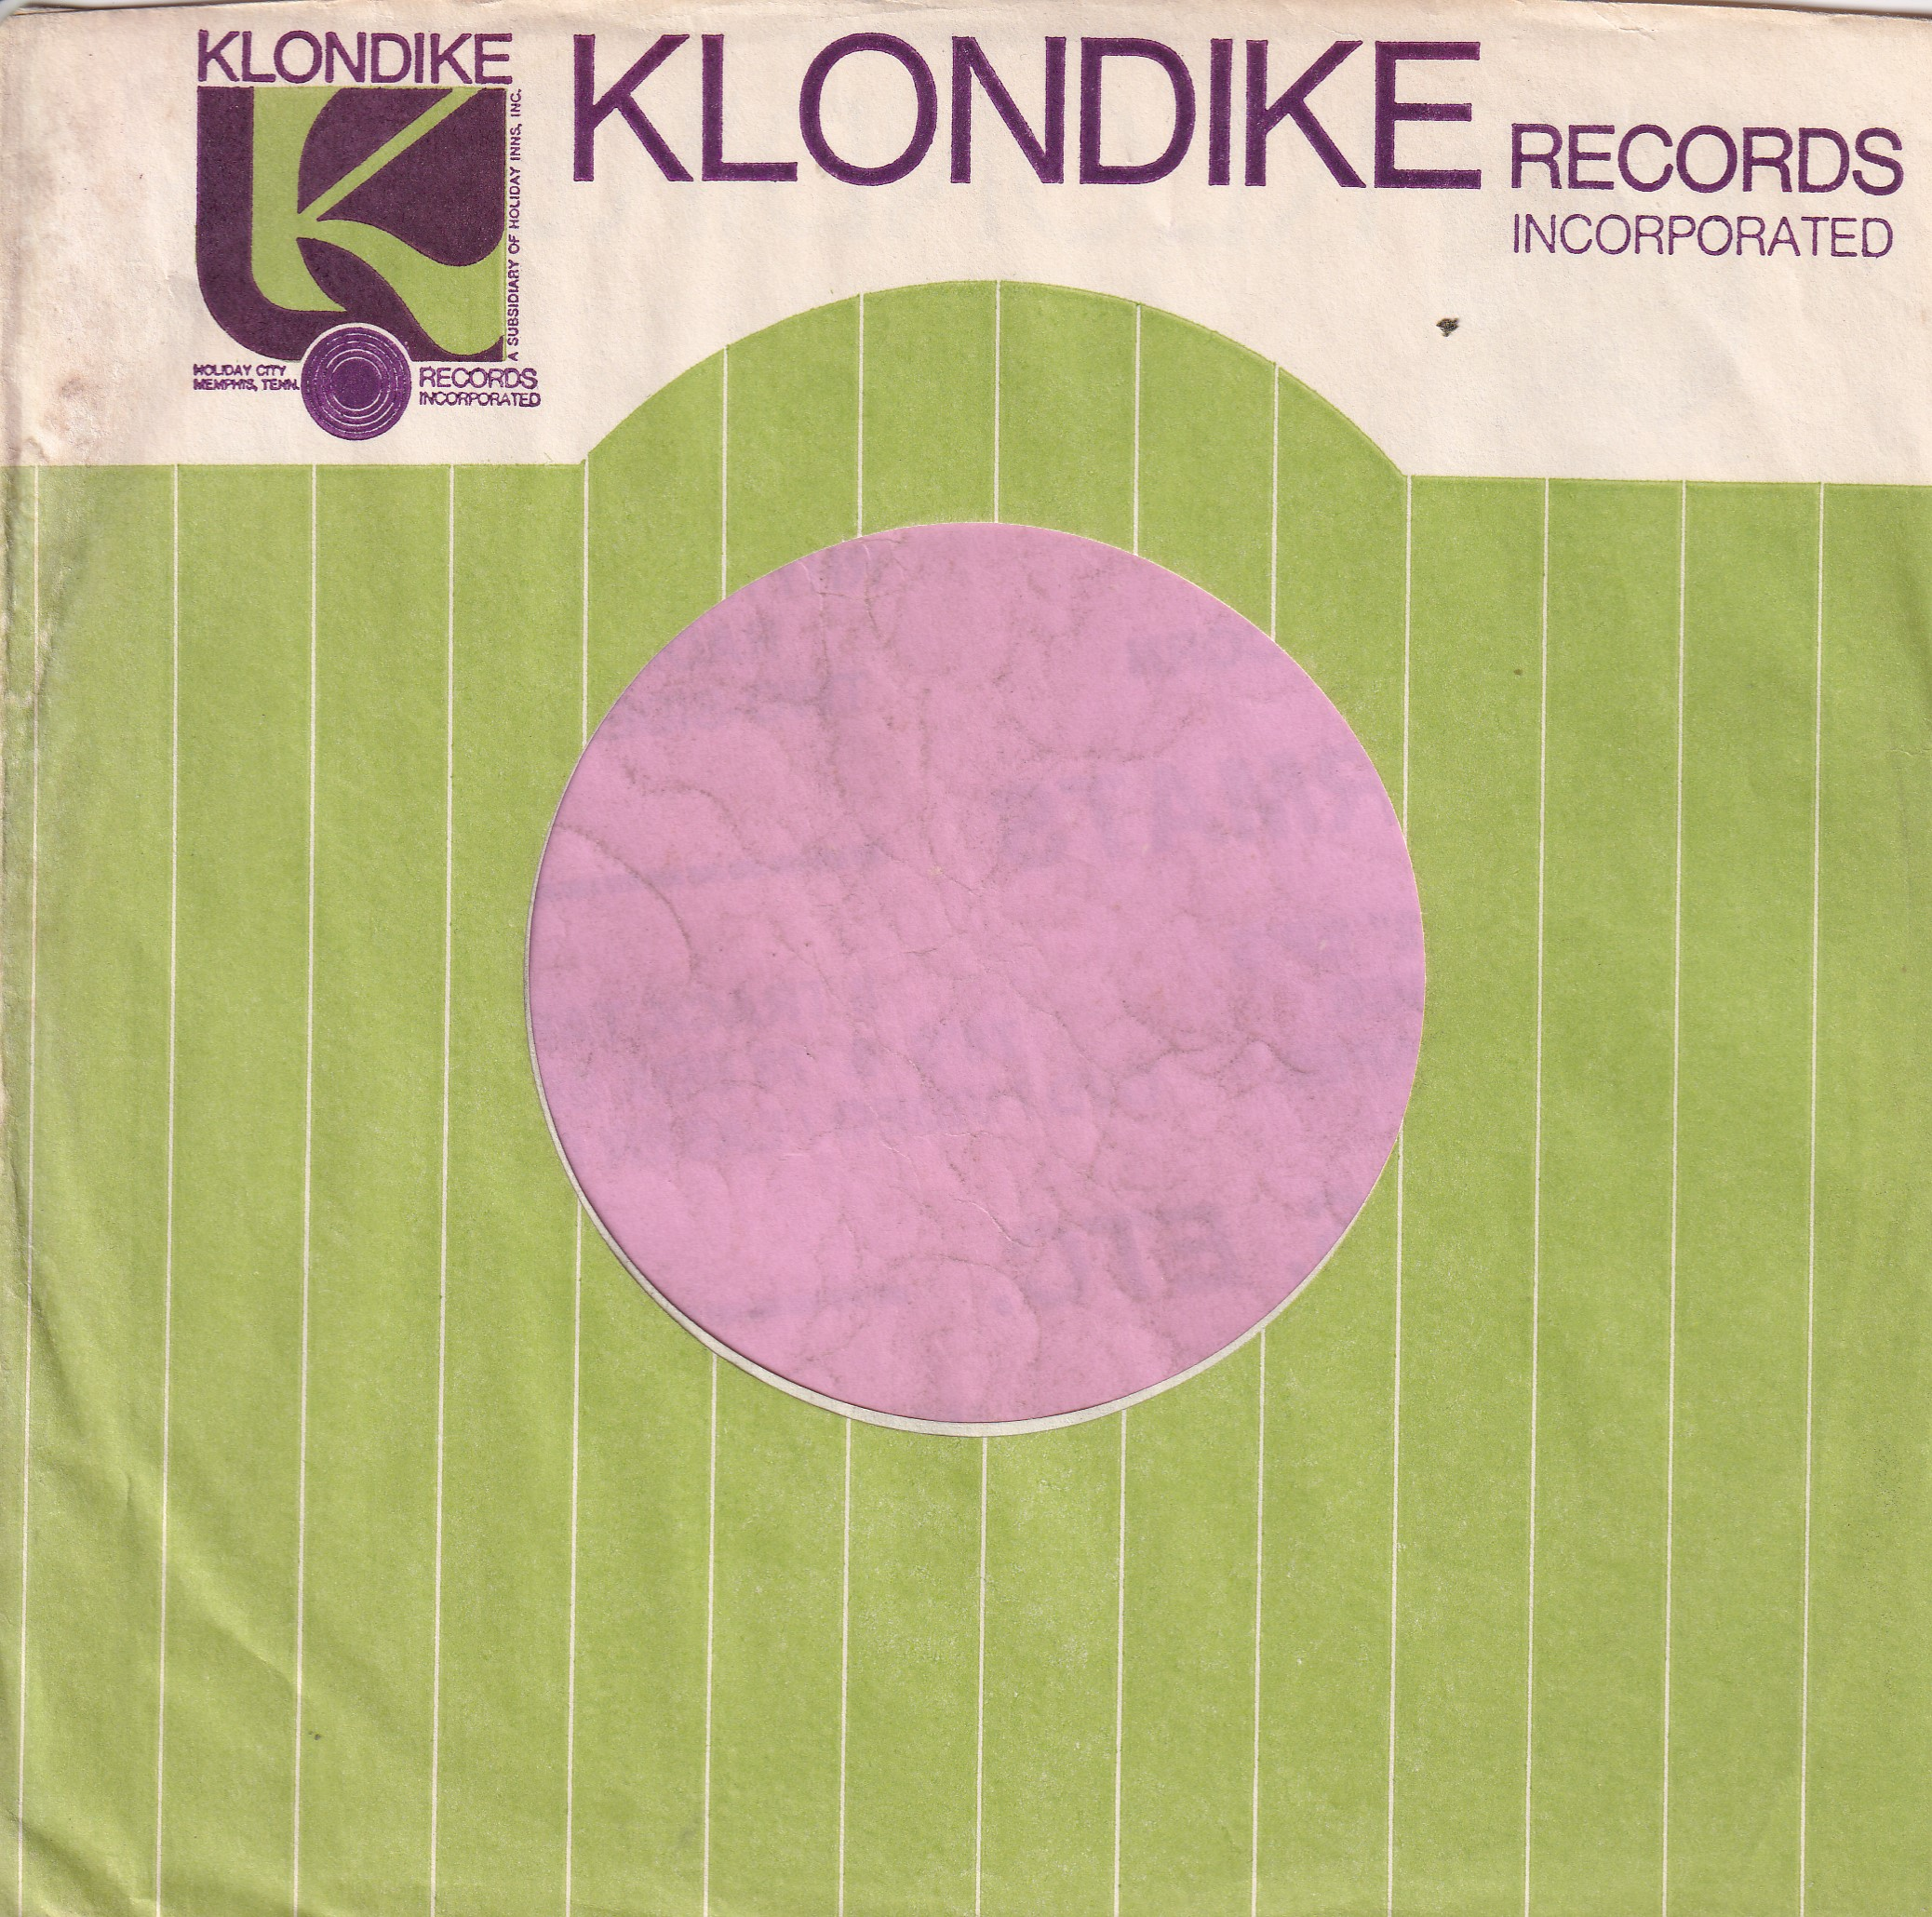 Klondike Records U.S.A. Dull Purple Print Company Sleeve 1960's